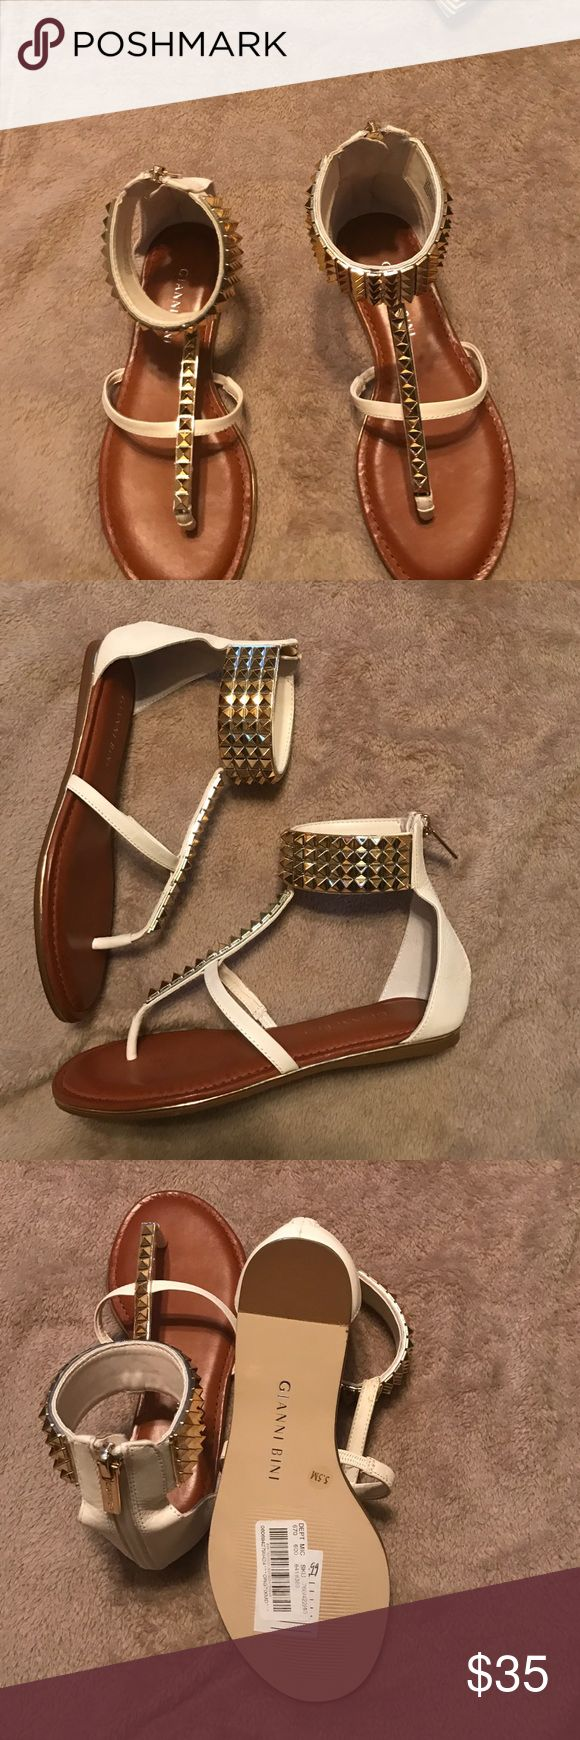 Cream sandals with gold beading by Gianni Bini Gianni Bini sandals Gianni Bini Shoes Sandals